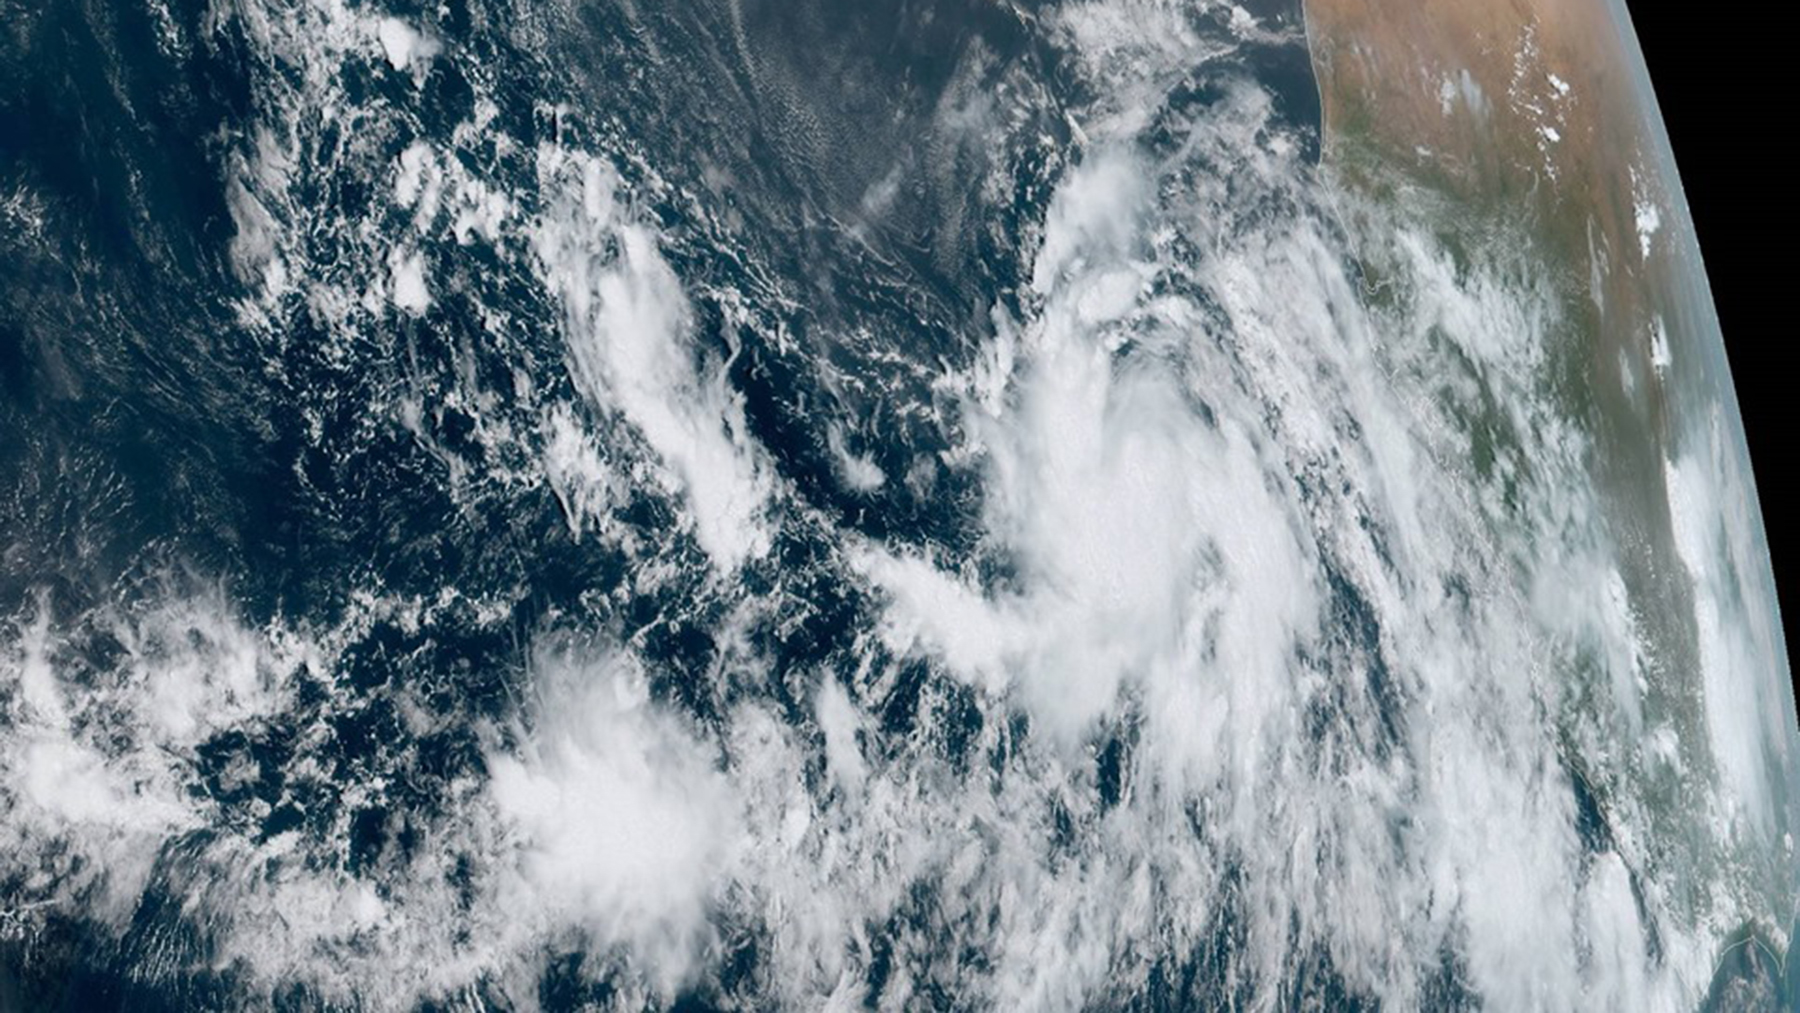 Tropical Storm Lorenzo, positioned over the eastern Atlantic Ocean in an image taken on Monday, September 23. (Photo courtesy of the National Hurricane Center)